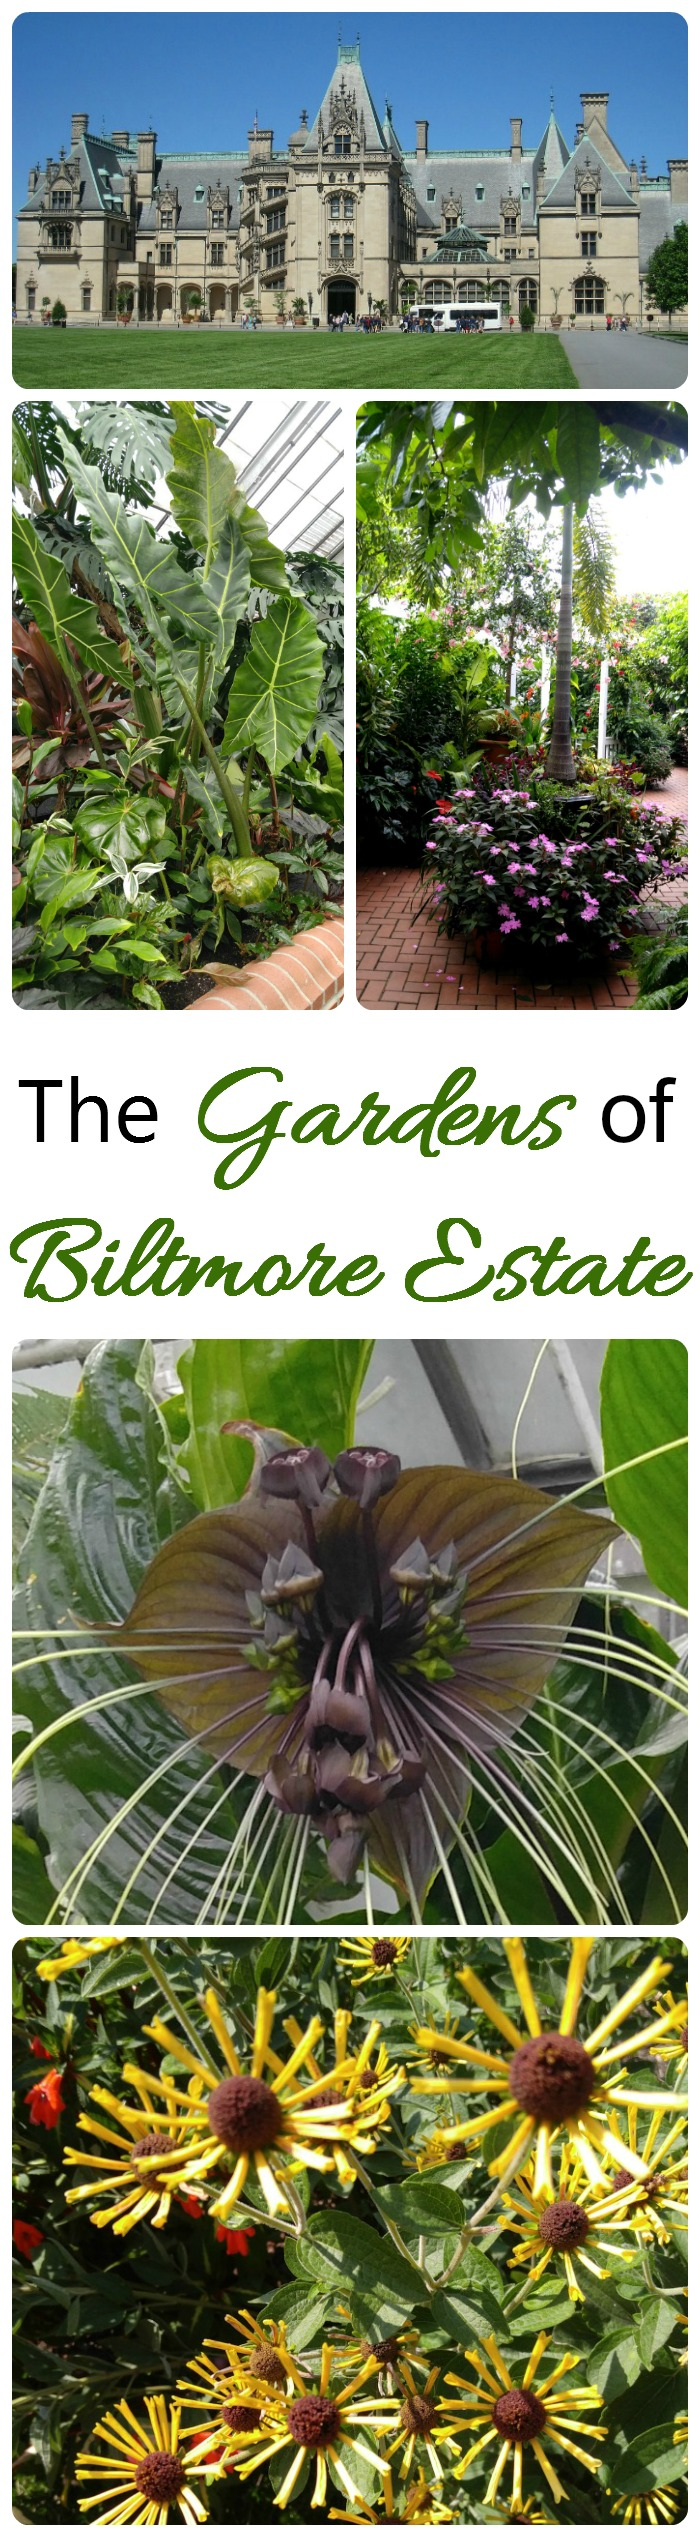 Biltmore Estate Gardens are even more impressive than the home itself. There are dozens of large garden beds and many greenhouses which are in flower year round.